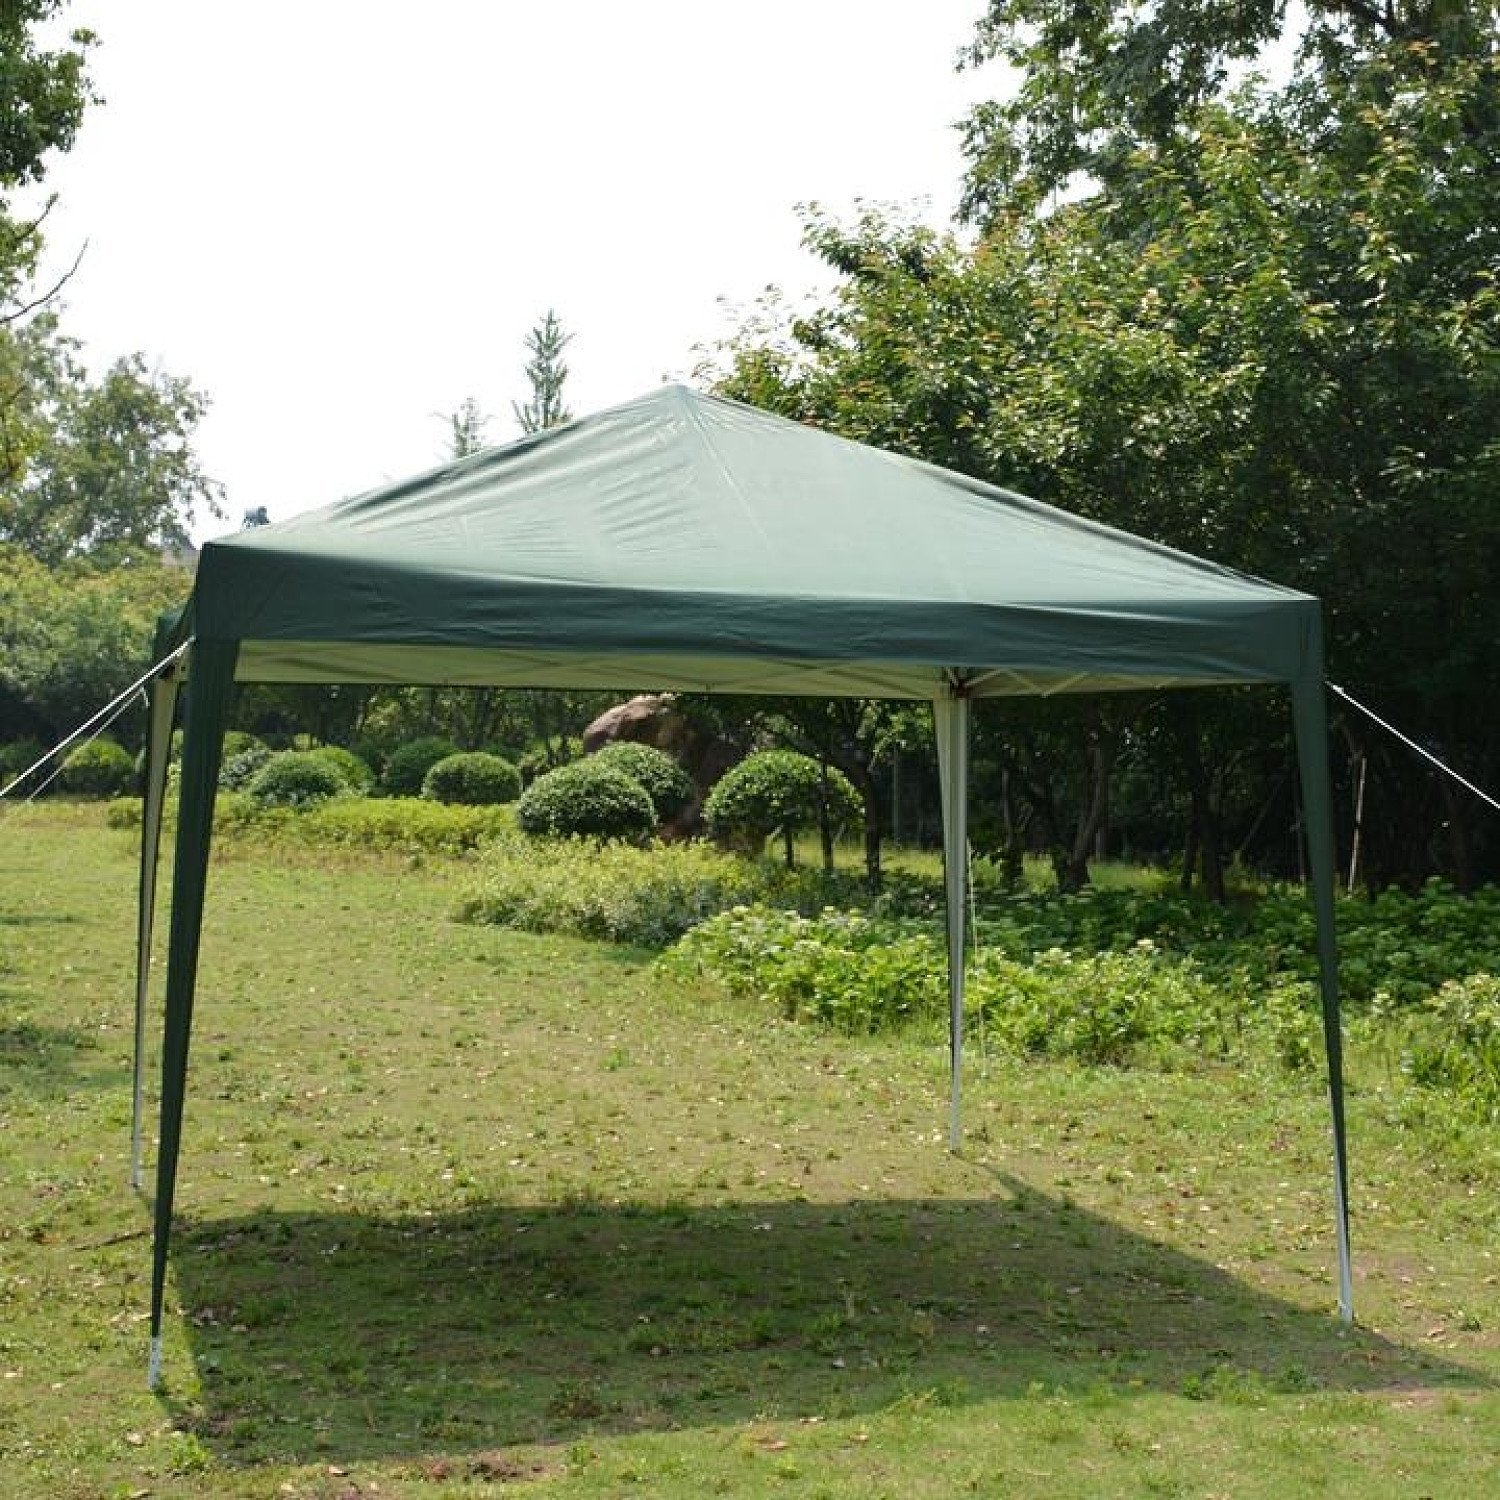 3 x 3m Practical Waterproof Right-Angle Folding Tent Green